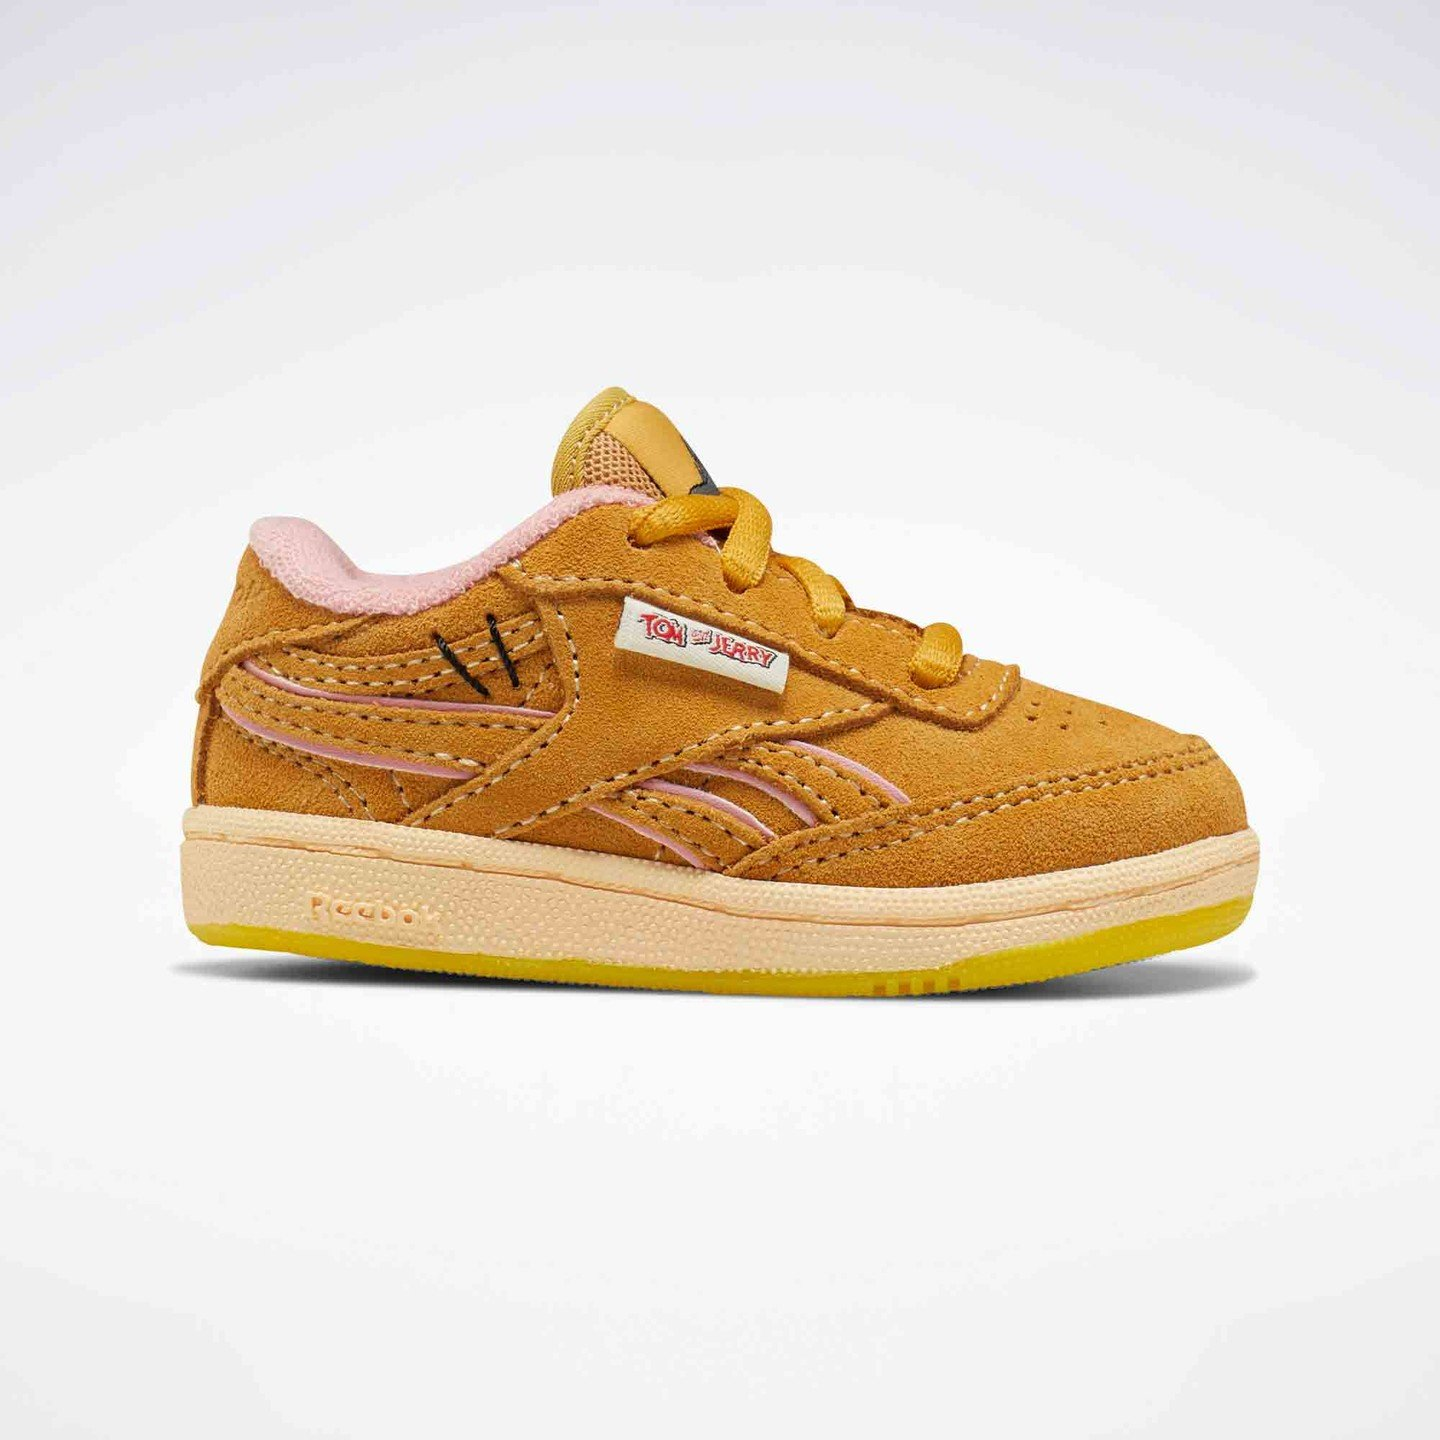 Reebok Club C Revenge Inf 'Tom & Jerry' Bold Brass / Quiet Pink FW4654